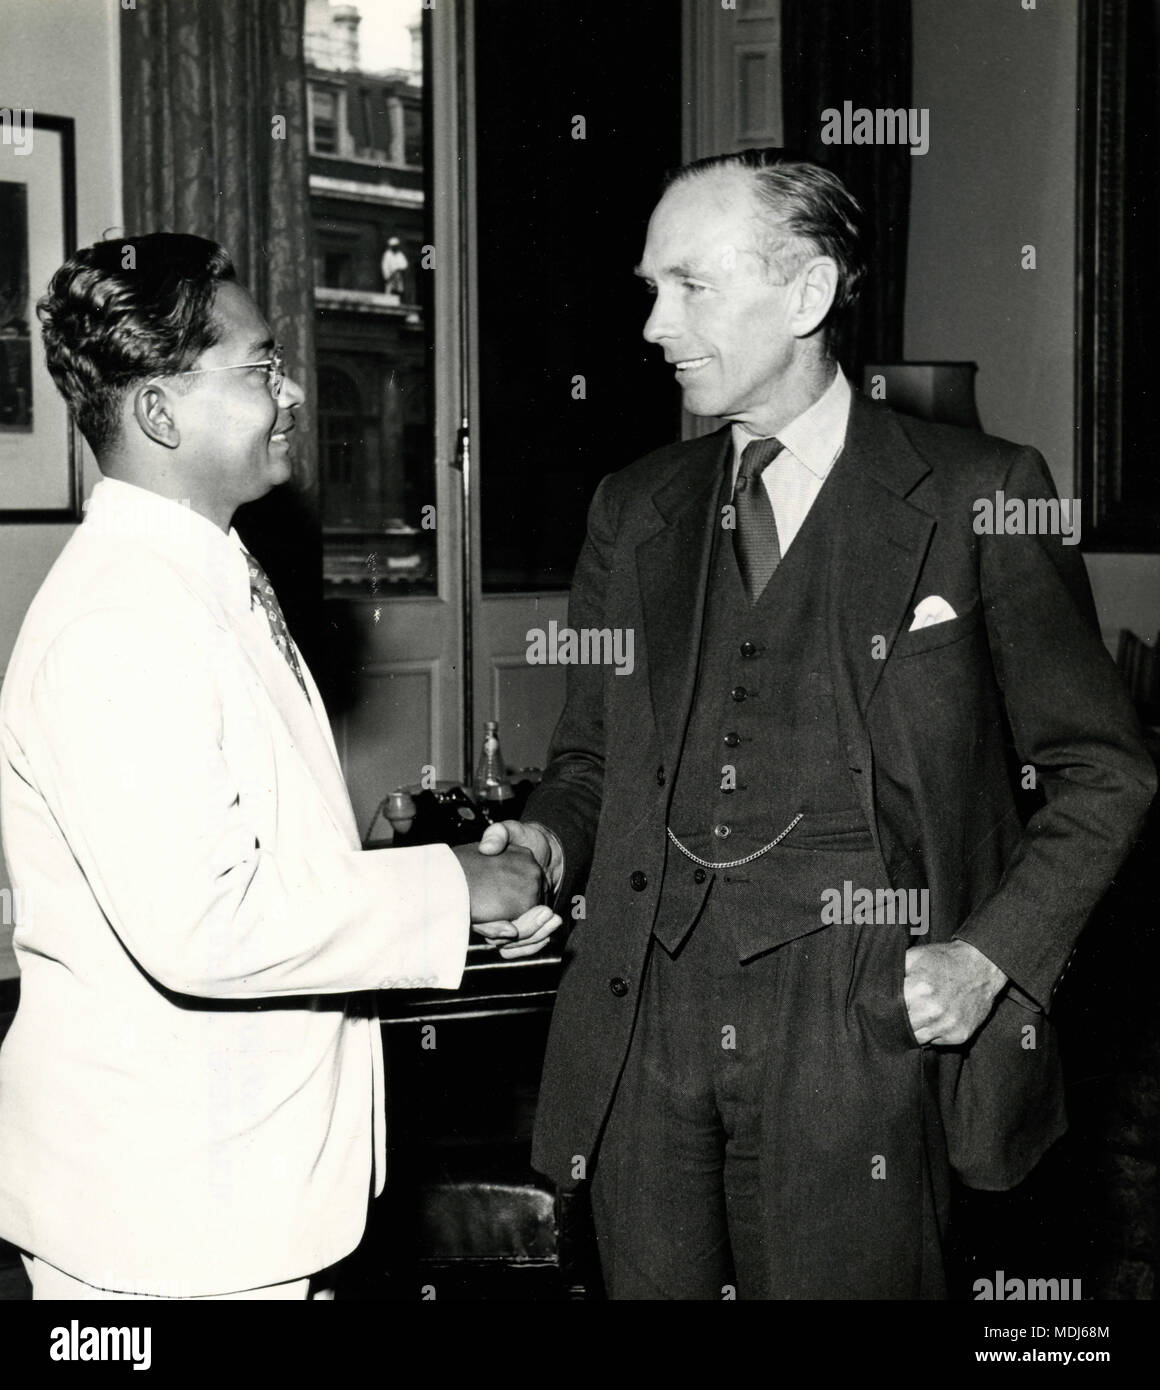 Pakistani Dr Mazhar-ul-Islam meets PM Alec Douglas-Home, Earl of Home at the Commonwealth Relations Office, London, UK 1958 - Stock Image